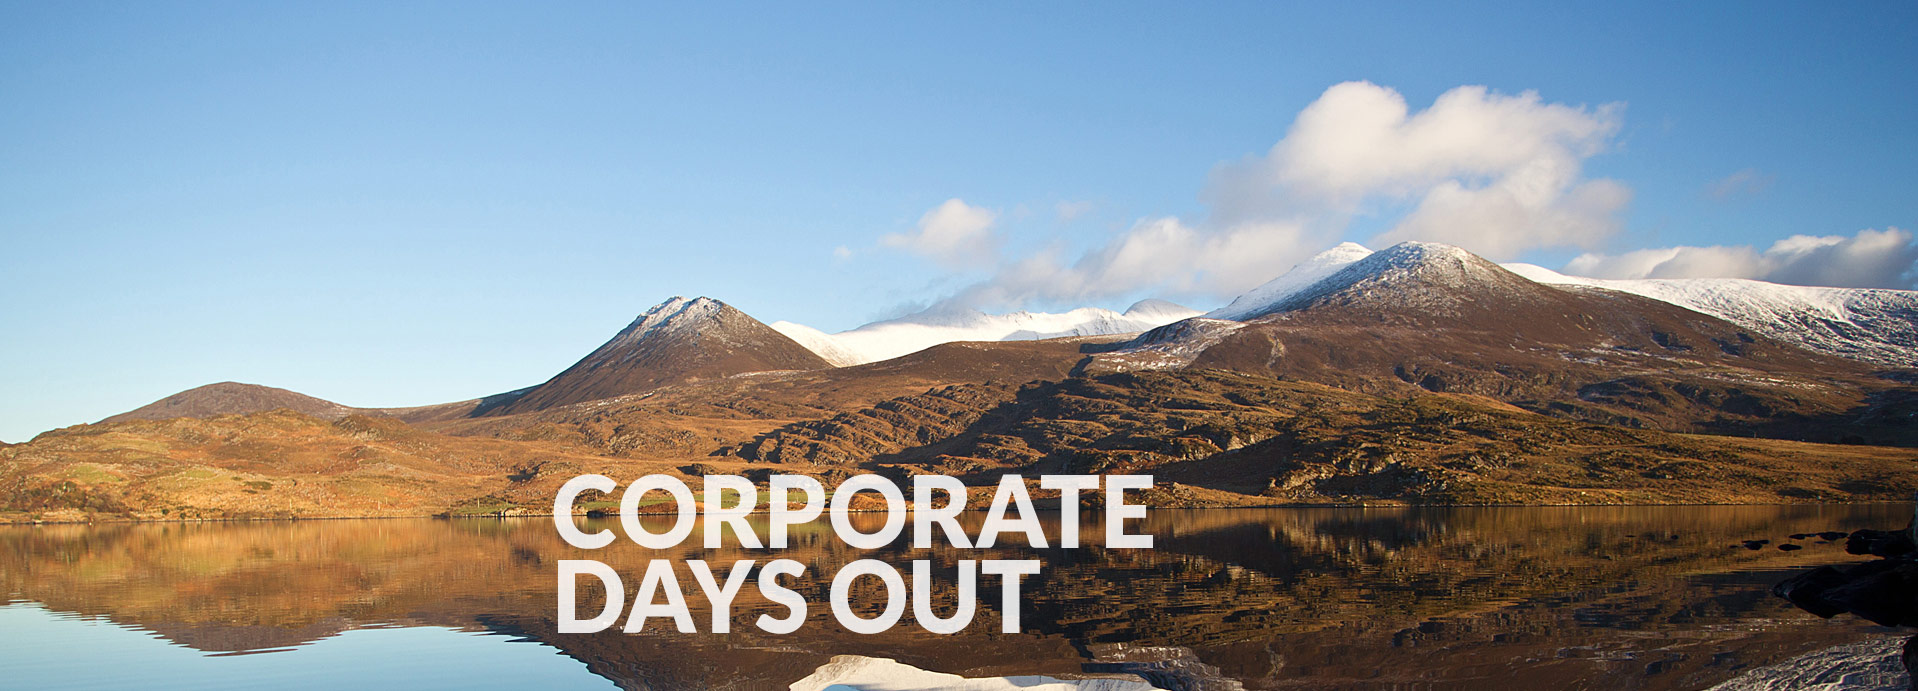 cappanalea corporate days